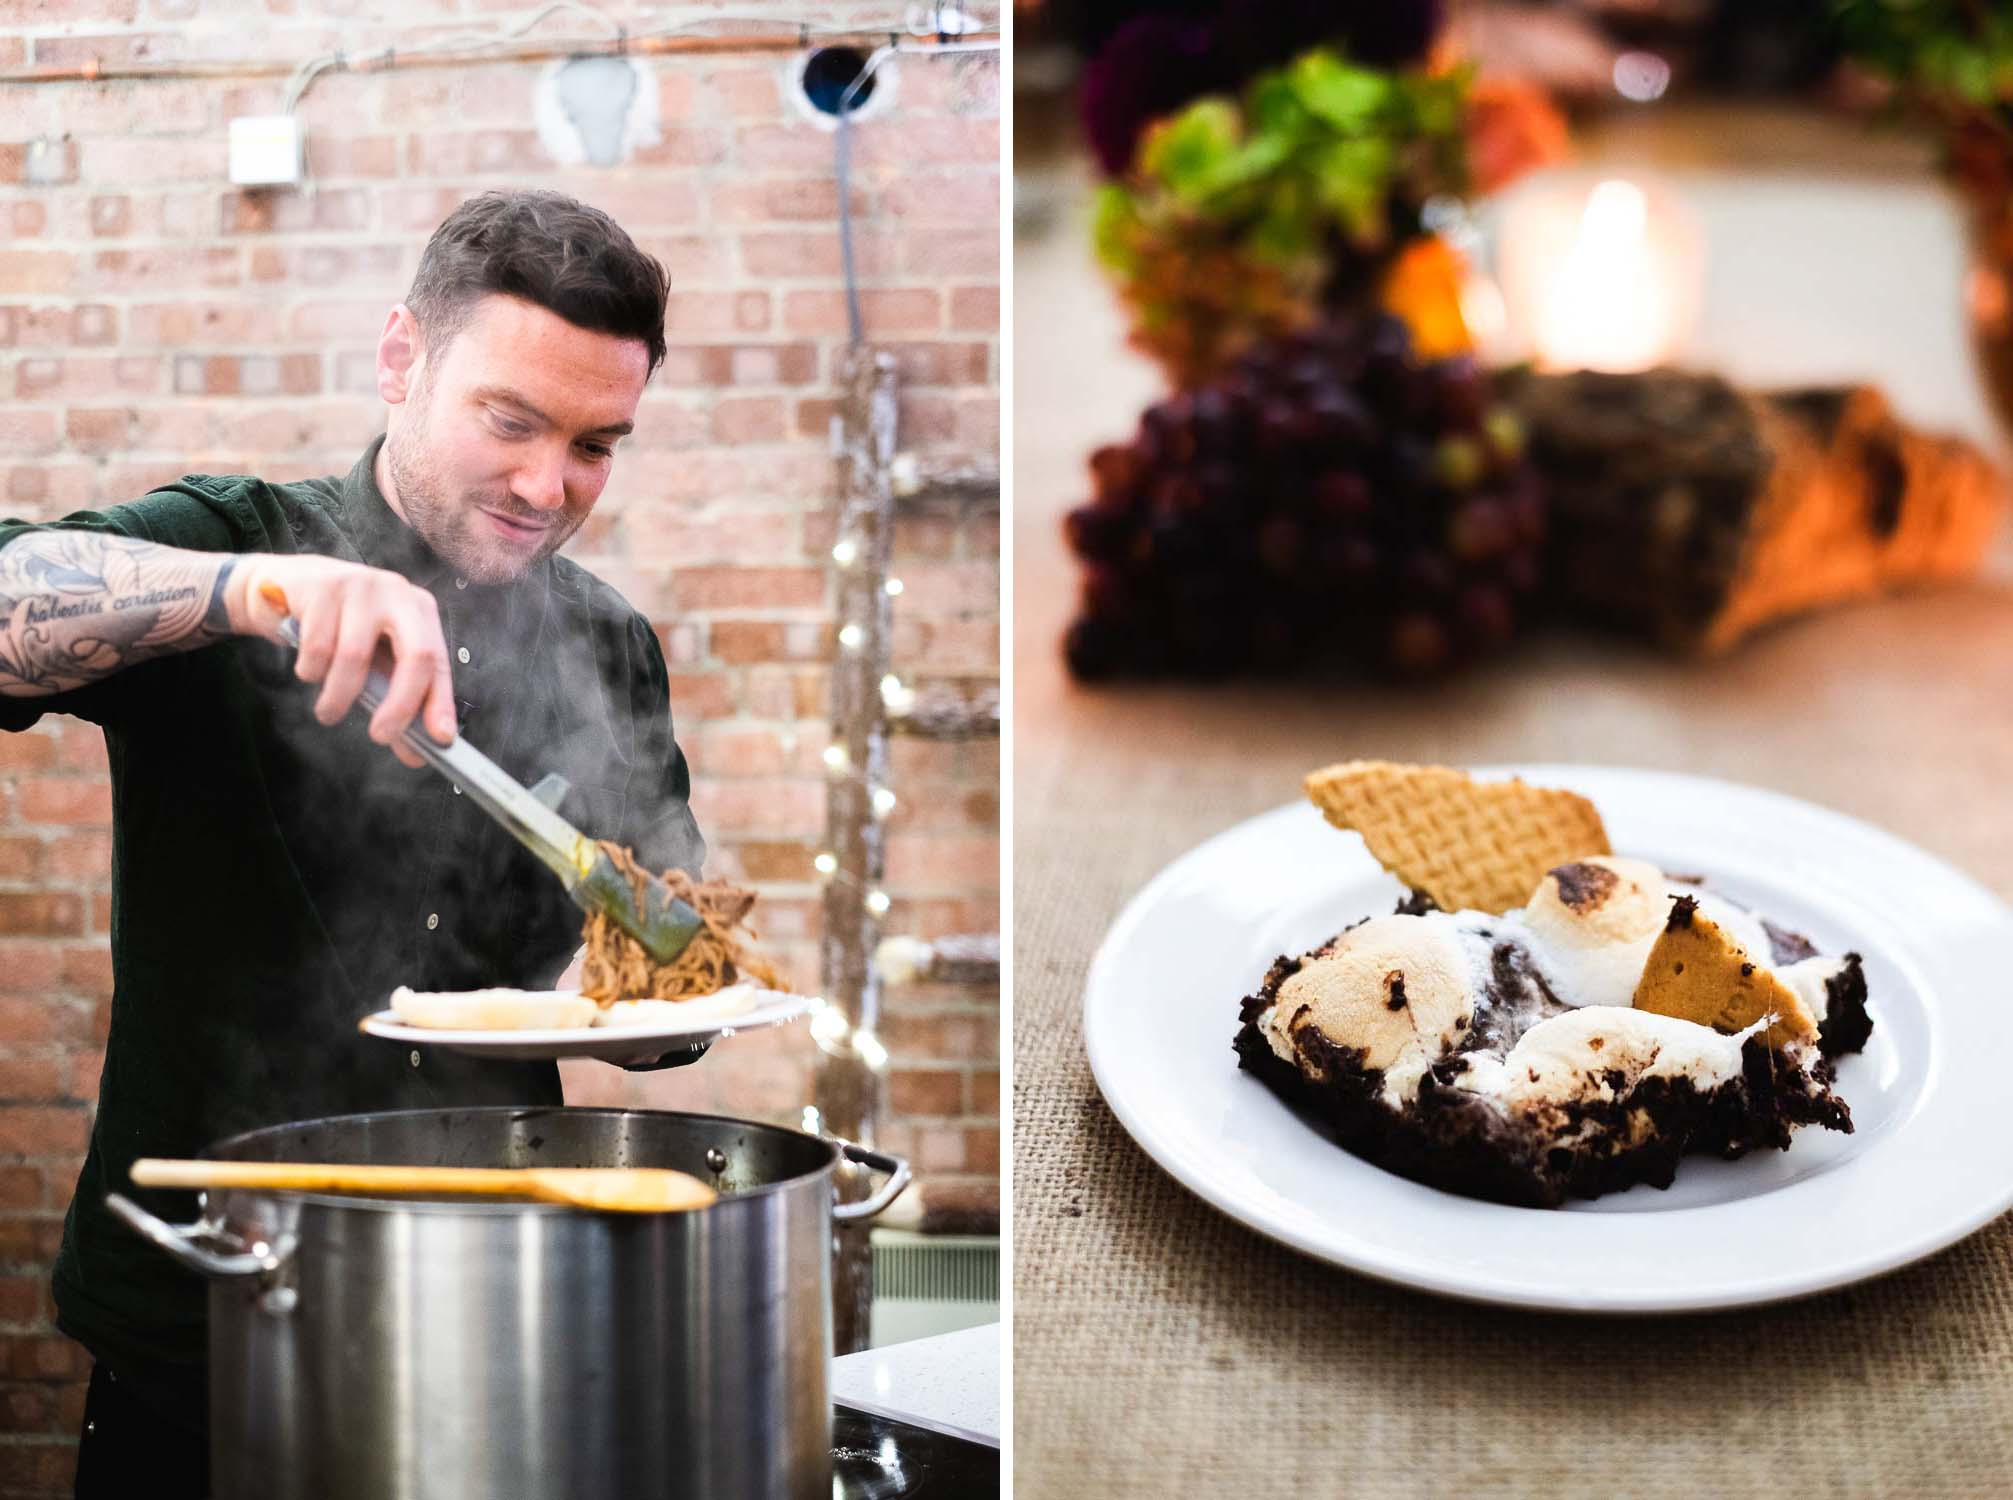 Bonfire Night Feast was hosted by Leisure and 'Britain's Best Home Cook' judge Dan Doherty, at The Vinyl Factory in London, on 5th November 2018.